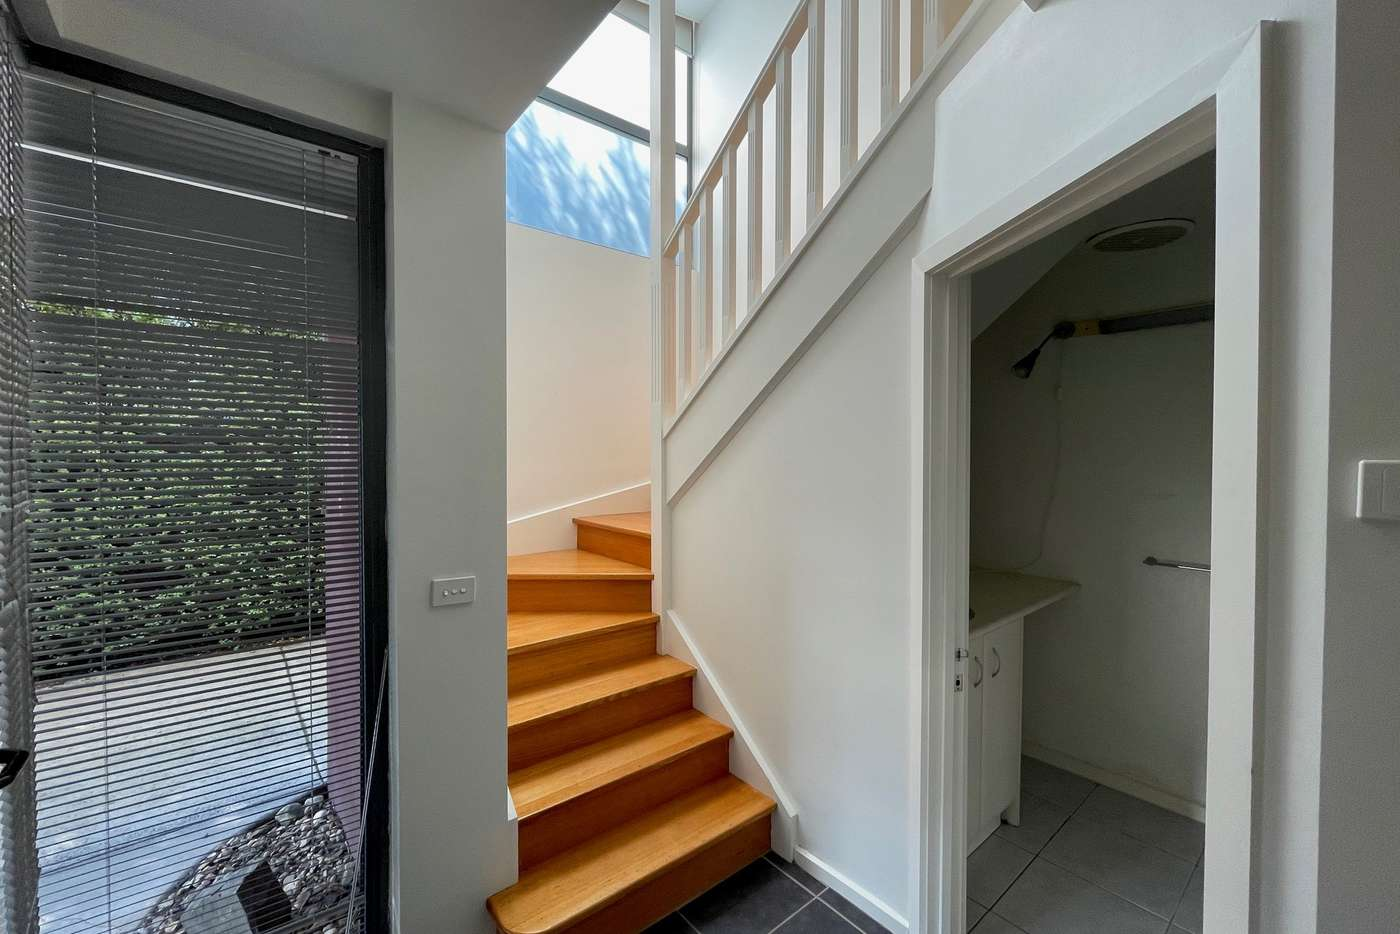 Sixth view of Homely townhouse listing, 2/189 Stawell Street, Richmond VIC 3121